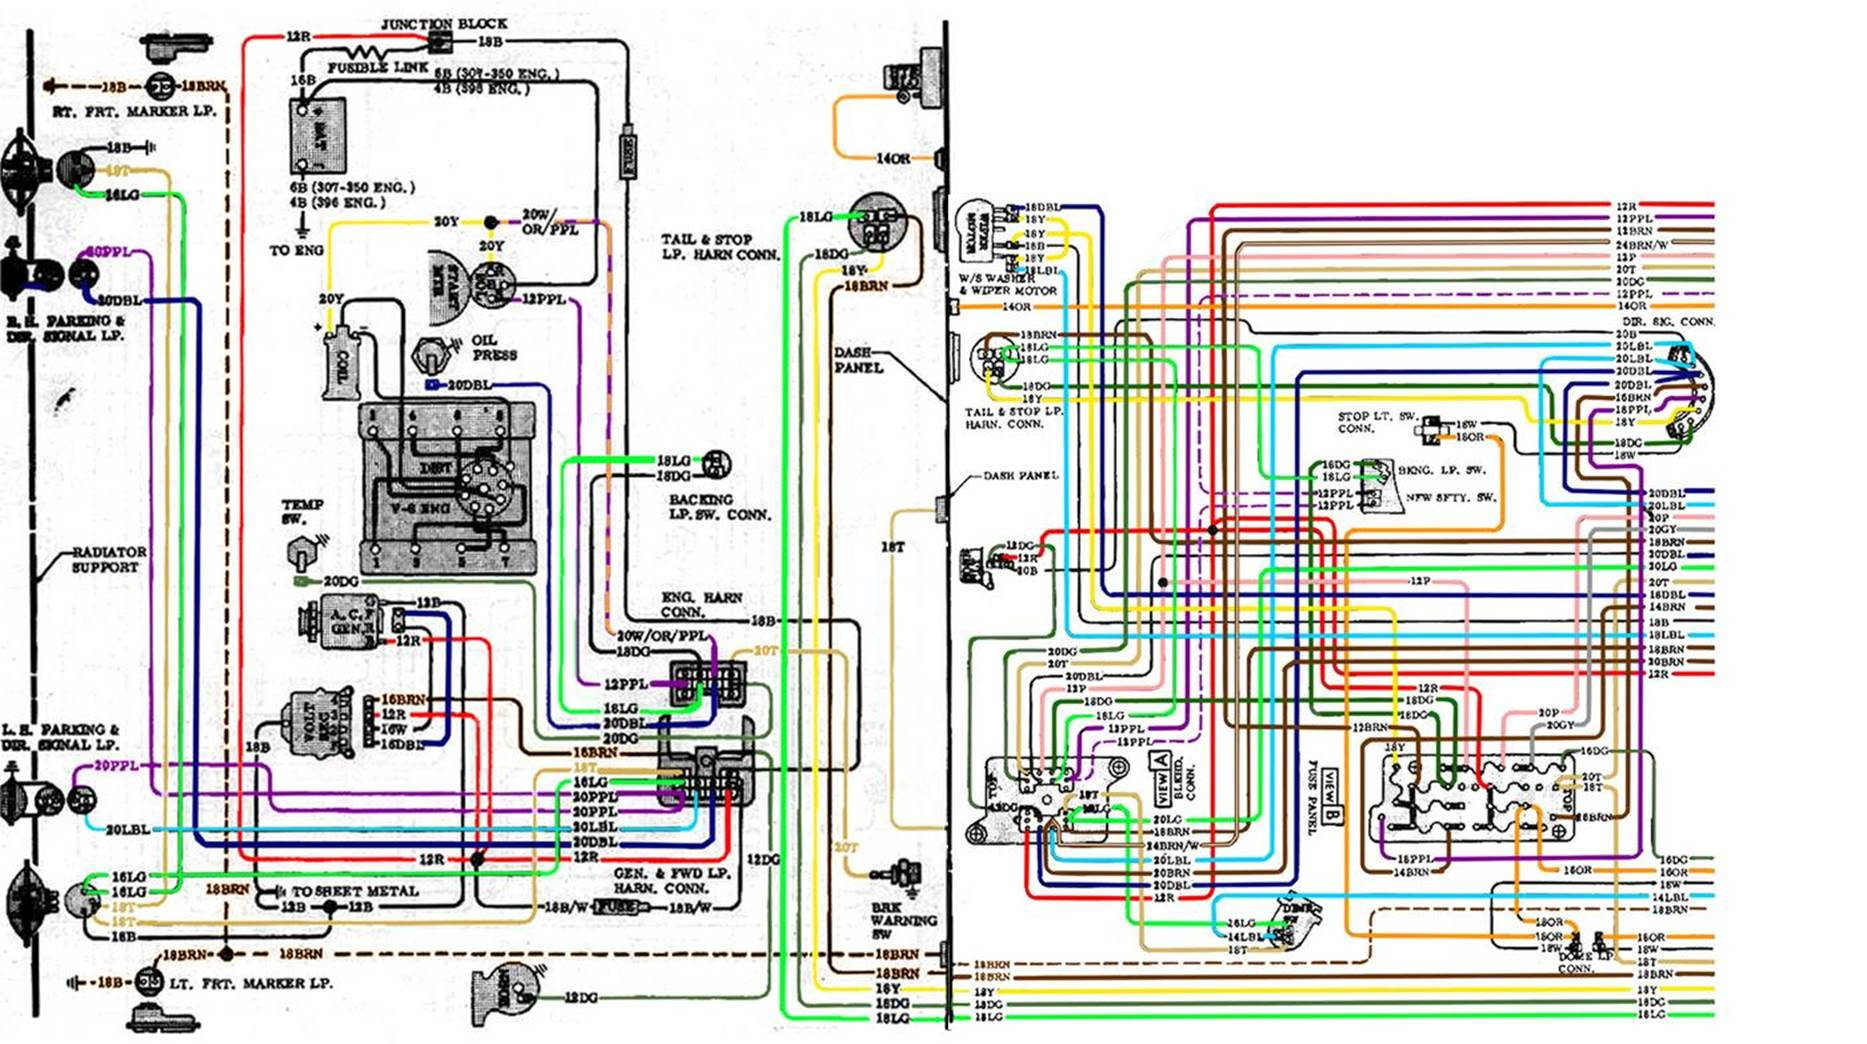 1969 Gmc Wiring Diagram - Schematic Wiring Diagram •